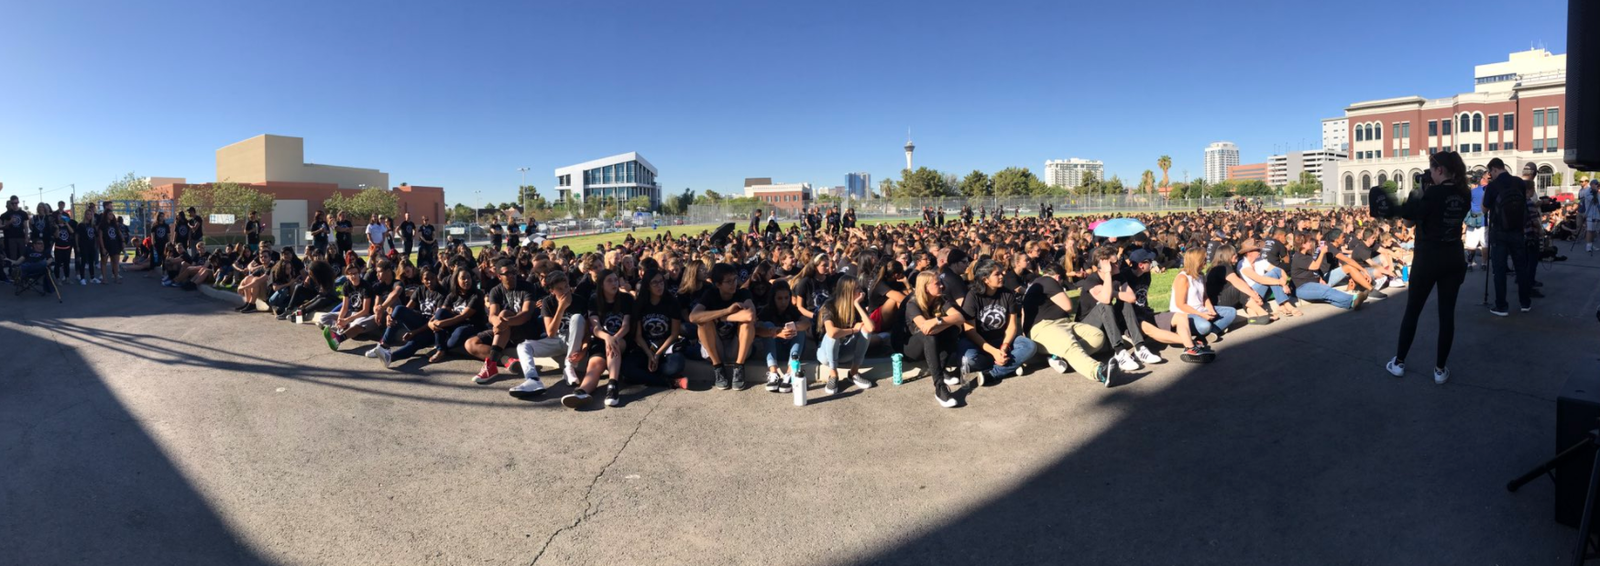 These 1,700 Las Vegas Academy students are celebrating more than just their first week back to school ... it's LVA's 25th anniversary! (Kyndell Nunley | KSNV)